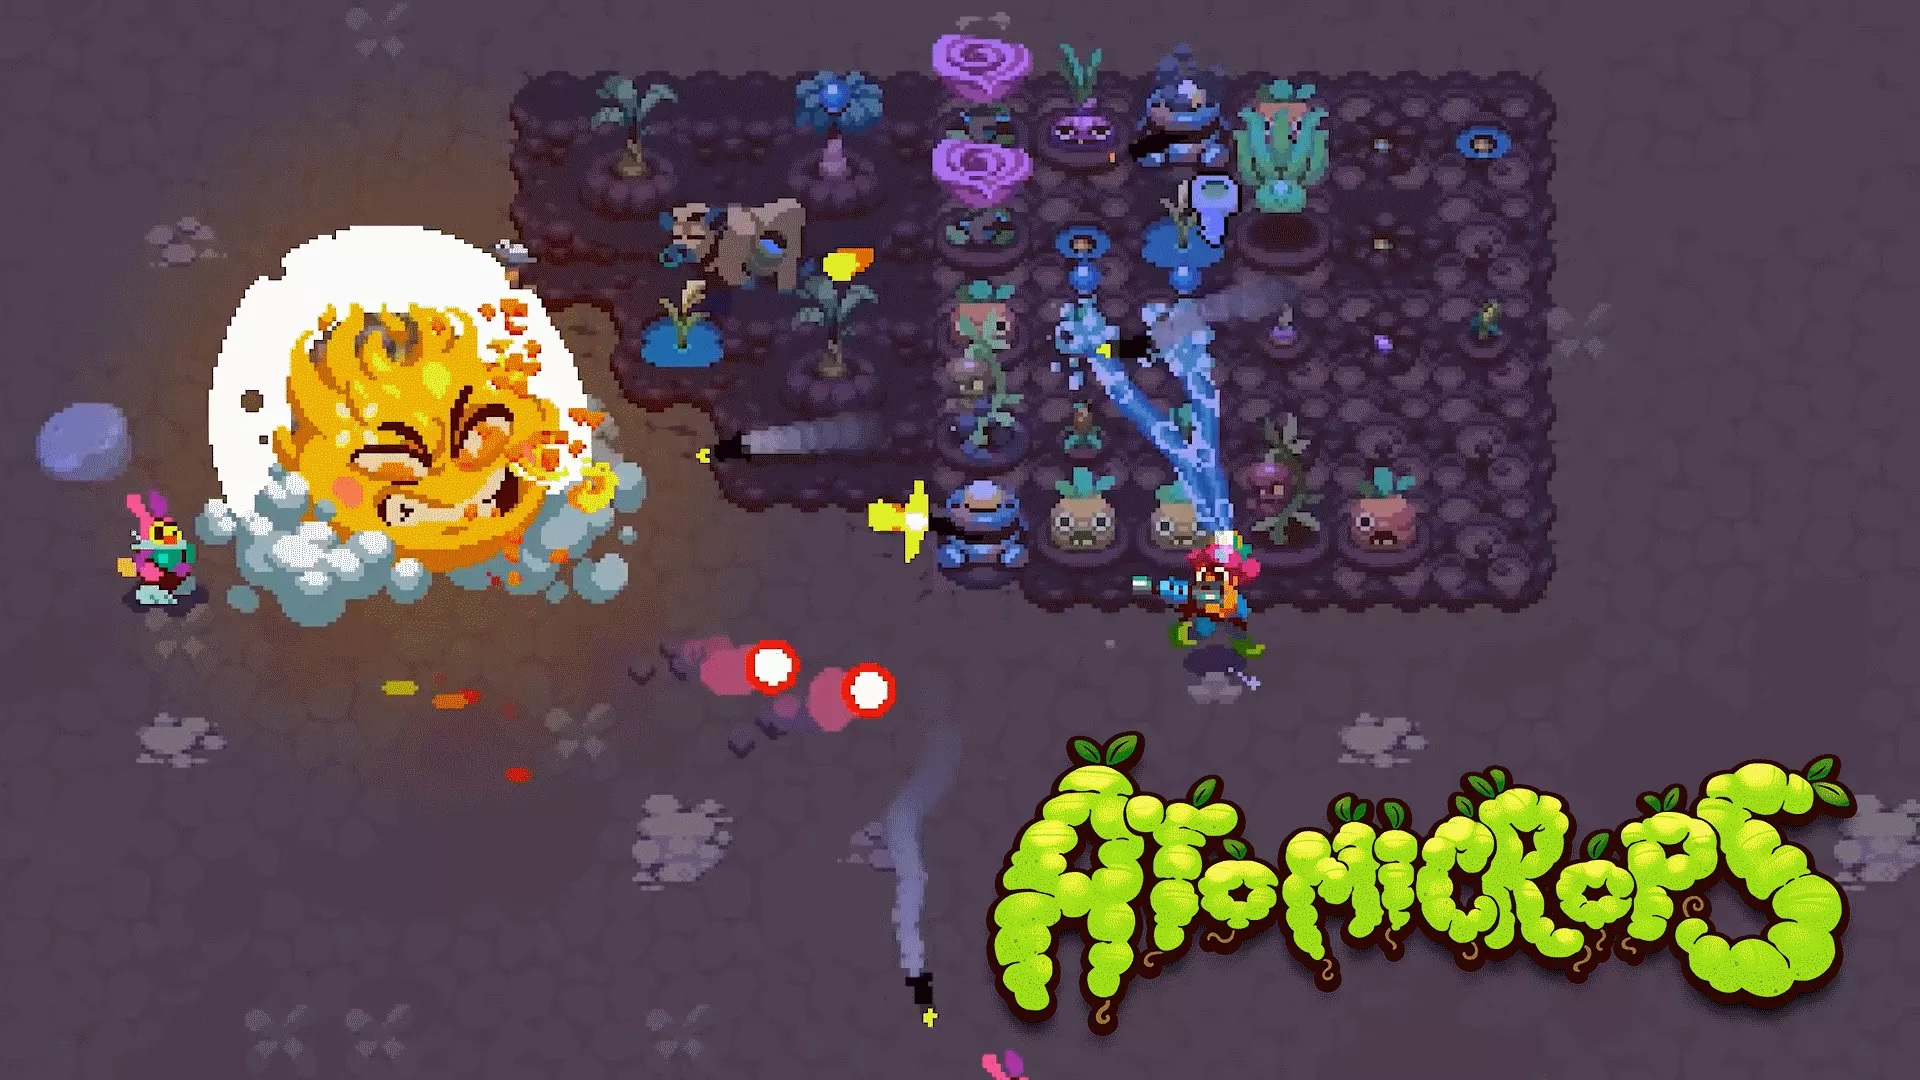 Charming art and loads of potential make Atomicrops a tasty proposition screenshot